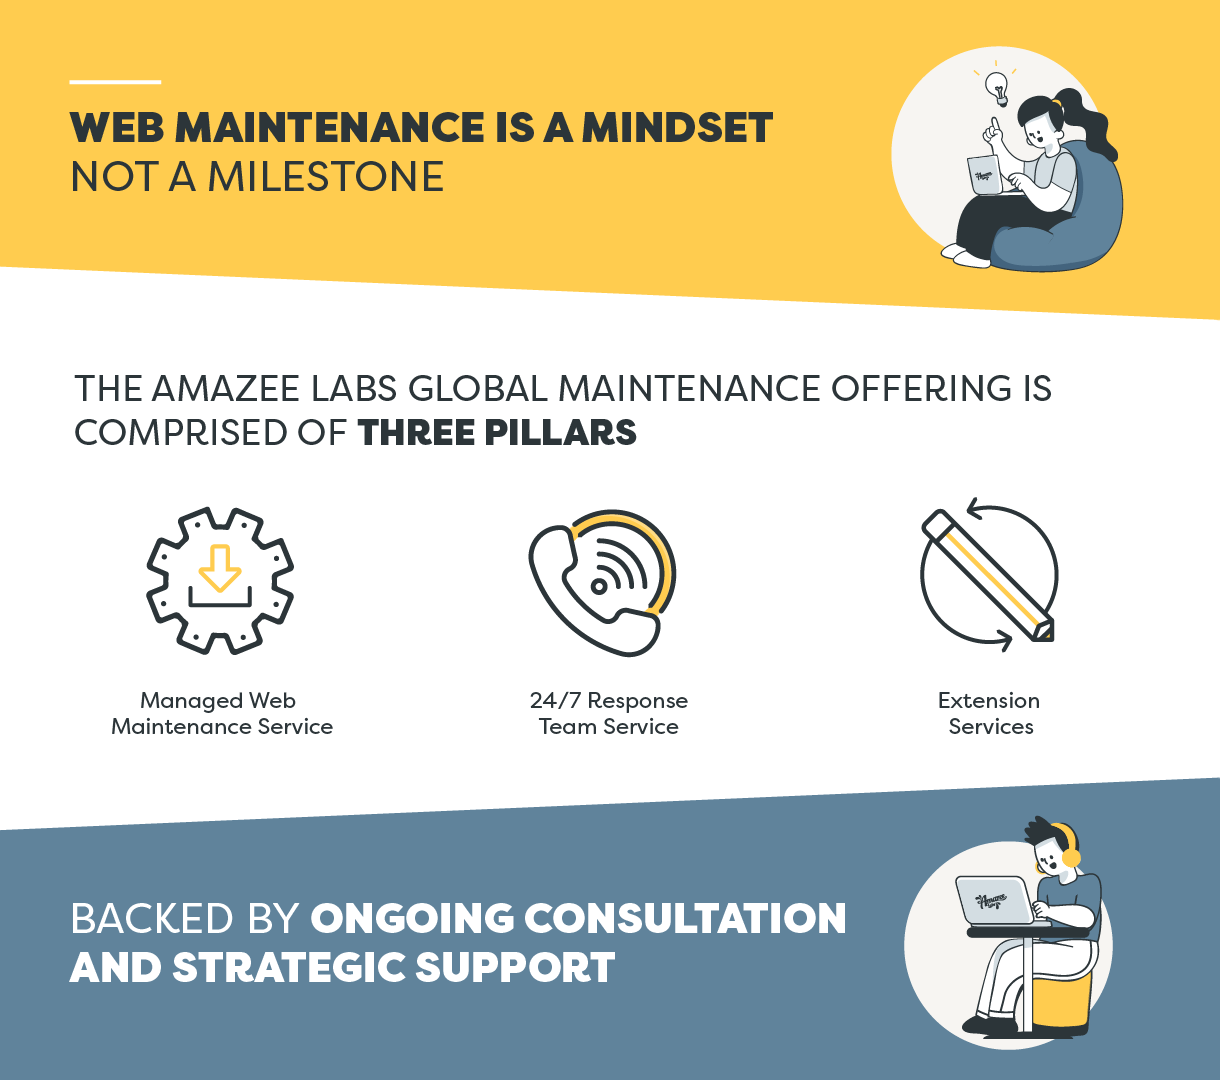 The Amazee Labs Global Maintenance offering is comprised of three pillars: Managed Web Maintenance Service, 24/7 Response Team Service, and Extension Services